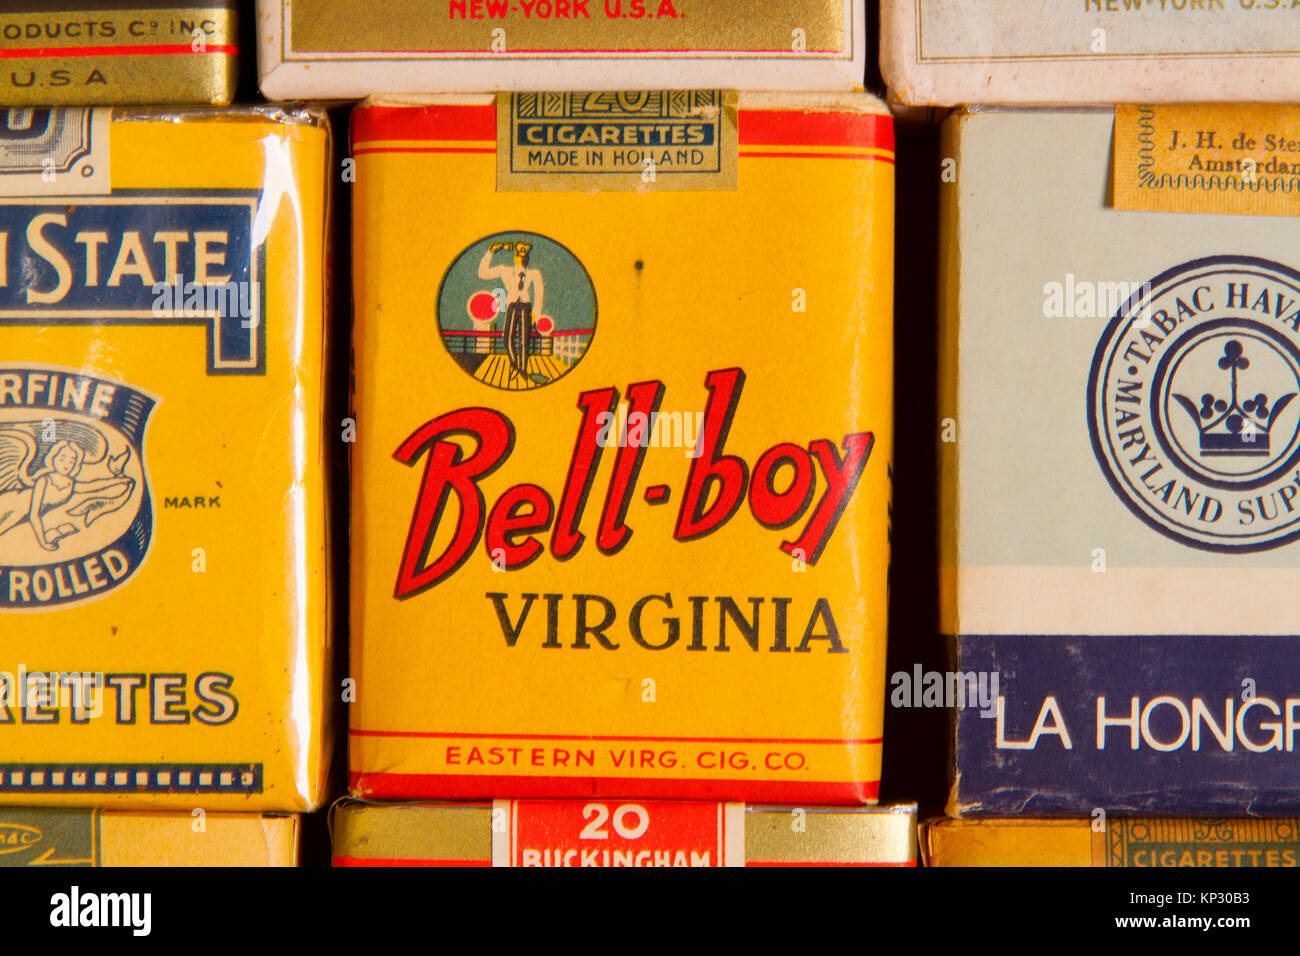 Where to buy an cigarettes Marlboro in NYc